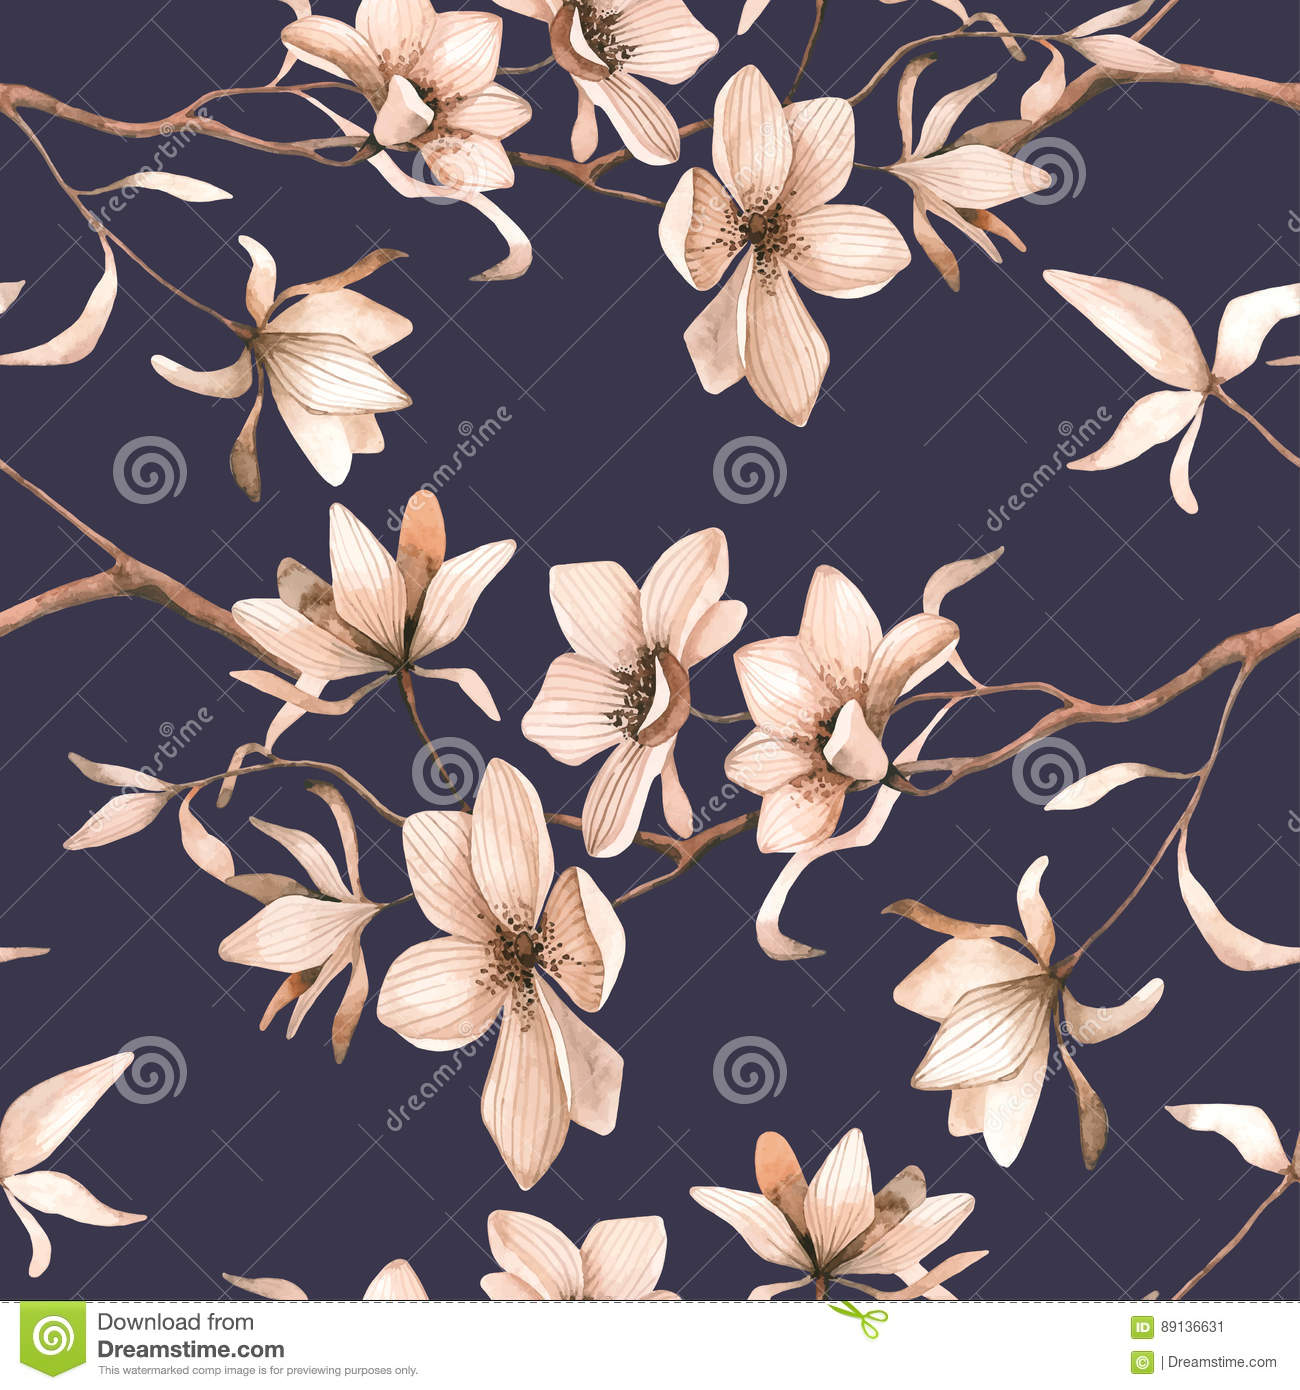 Abstract seamless floral pattern with of red roses and pink and blue freesia on black background.